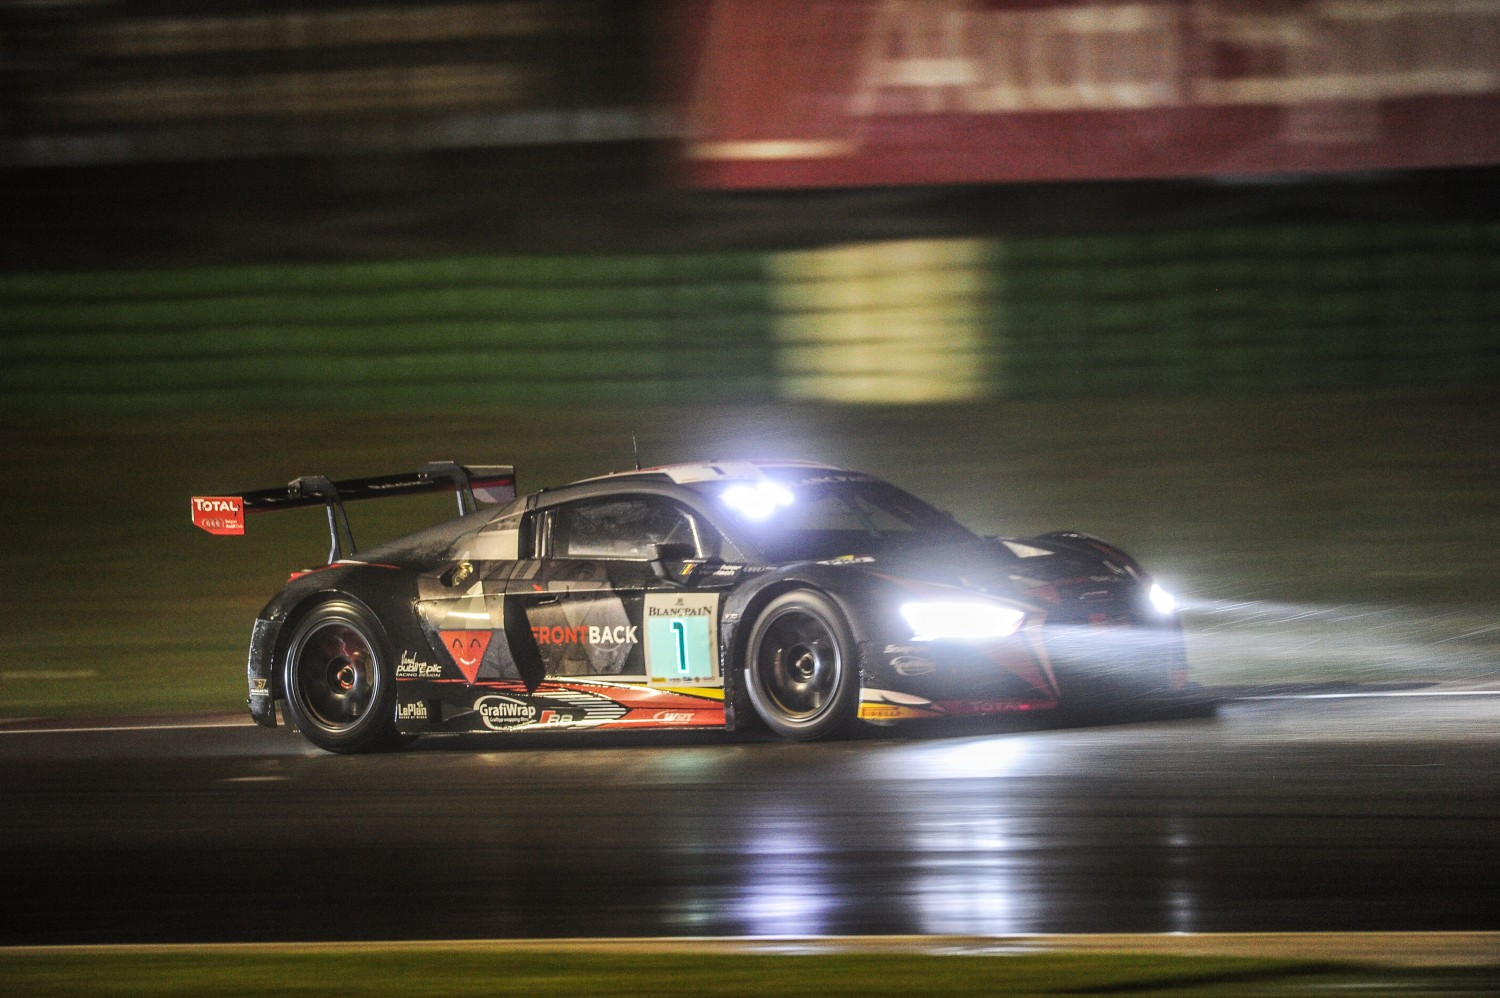 Laurens Vanthoor and Audi fastest on a very wet Misano World Circuit